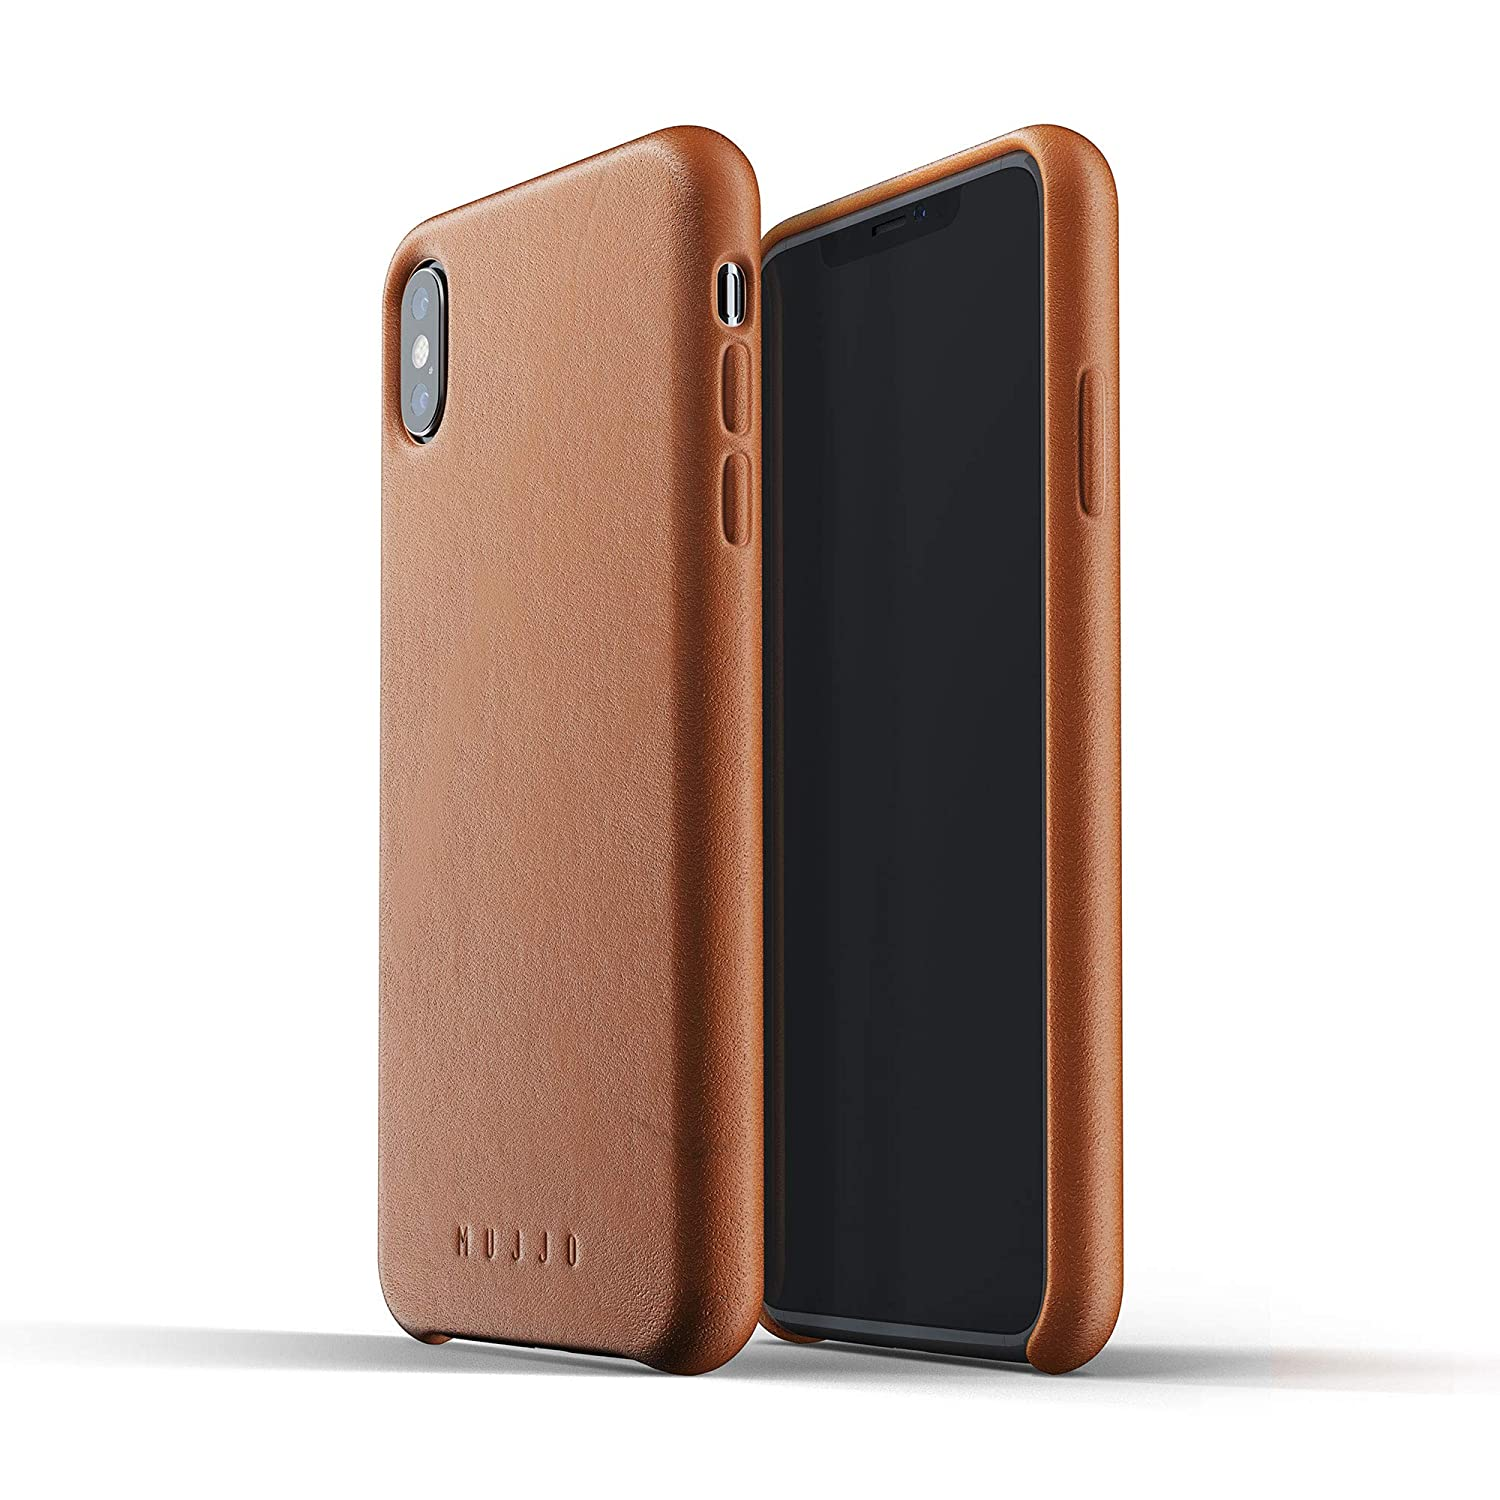 Funda para Iphone XS Max de cuero natural, marrón claro xmp